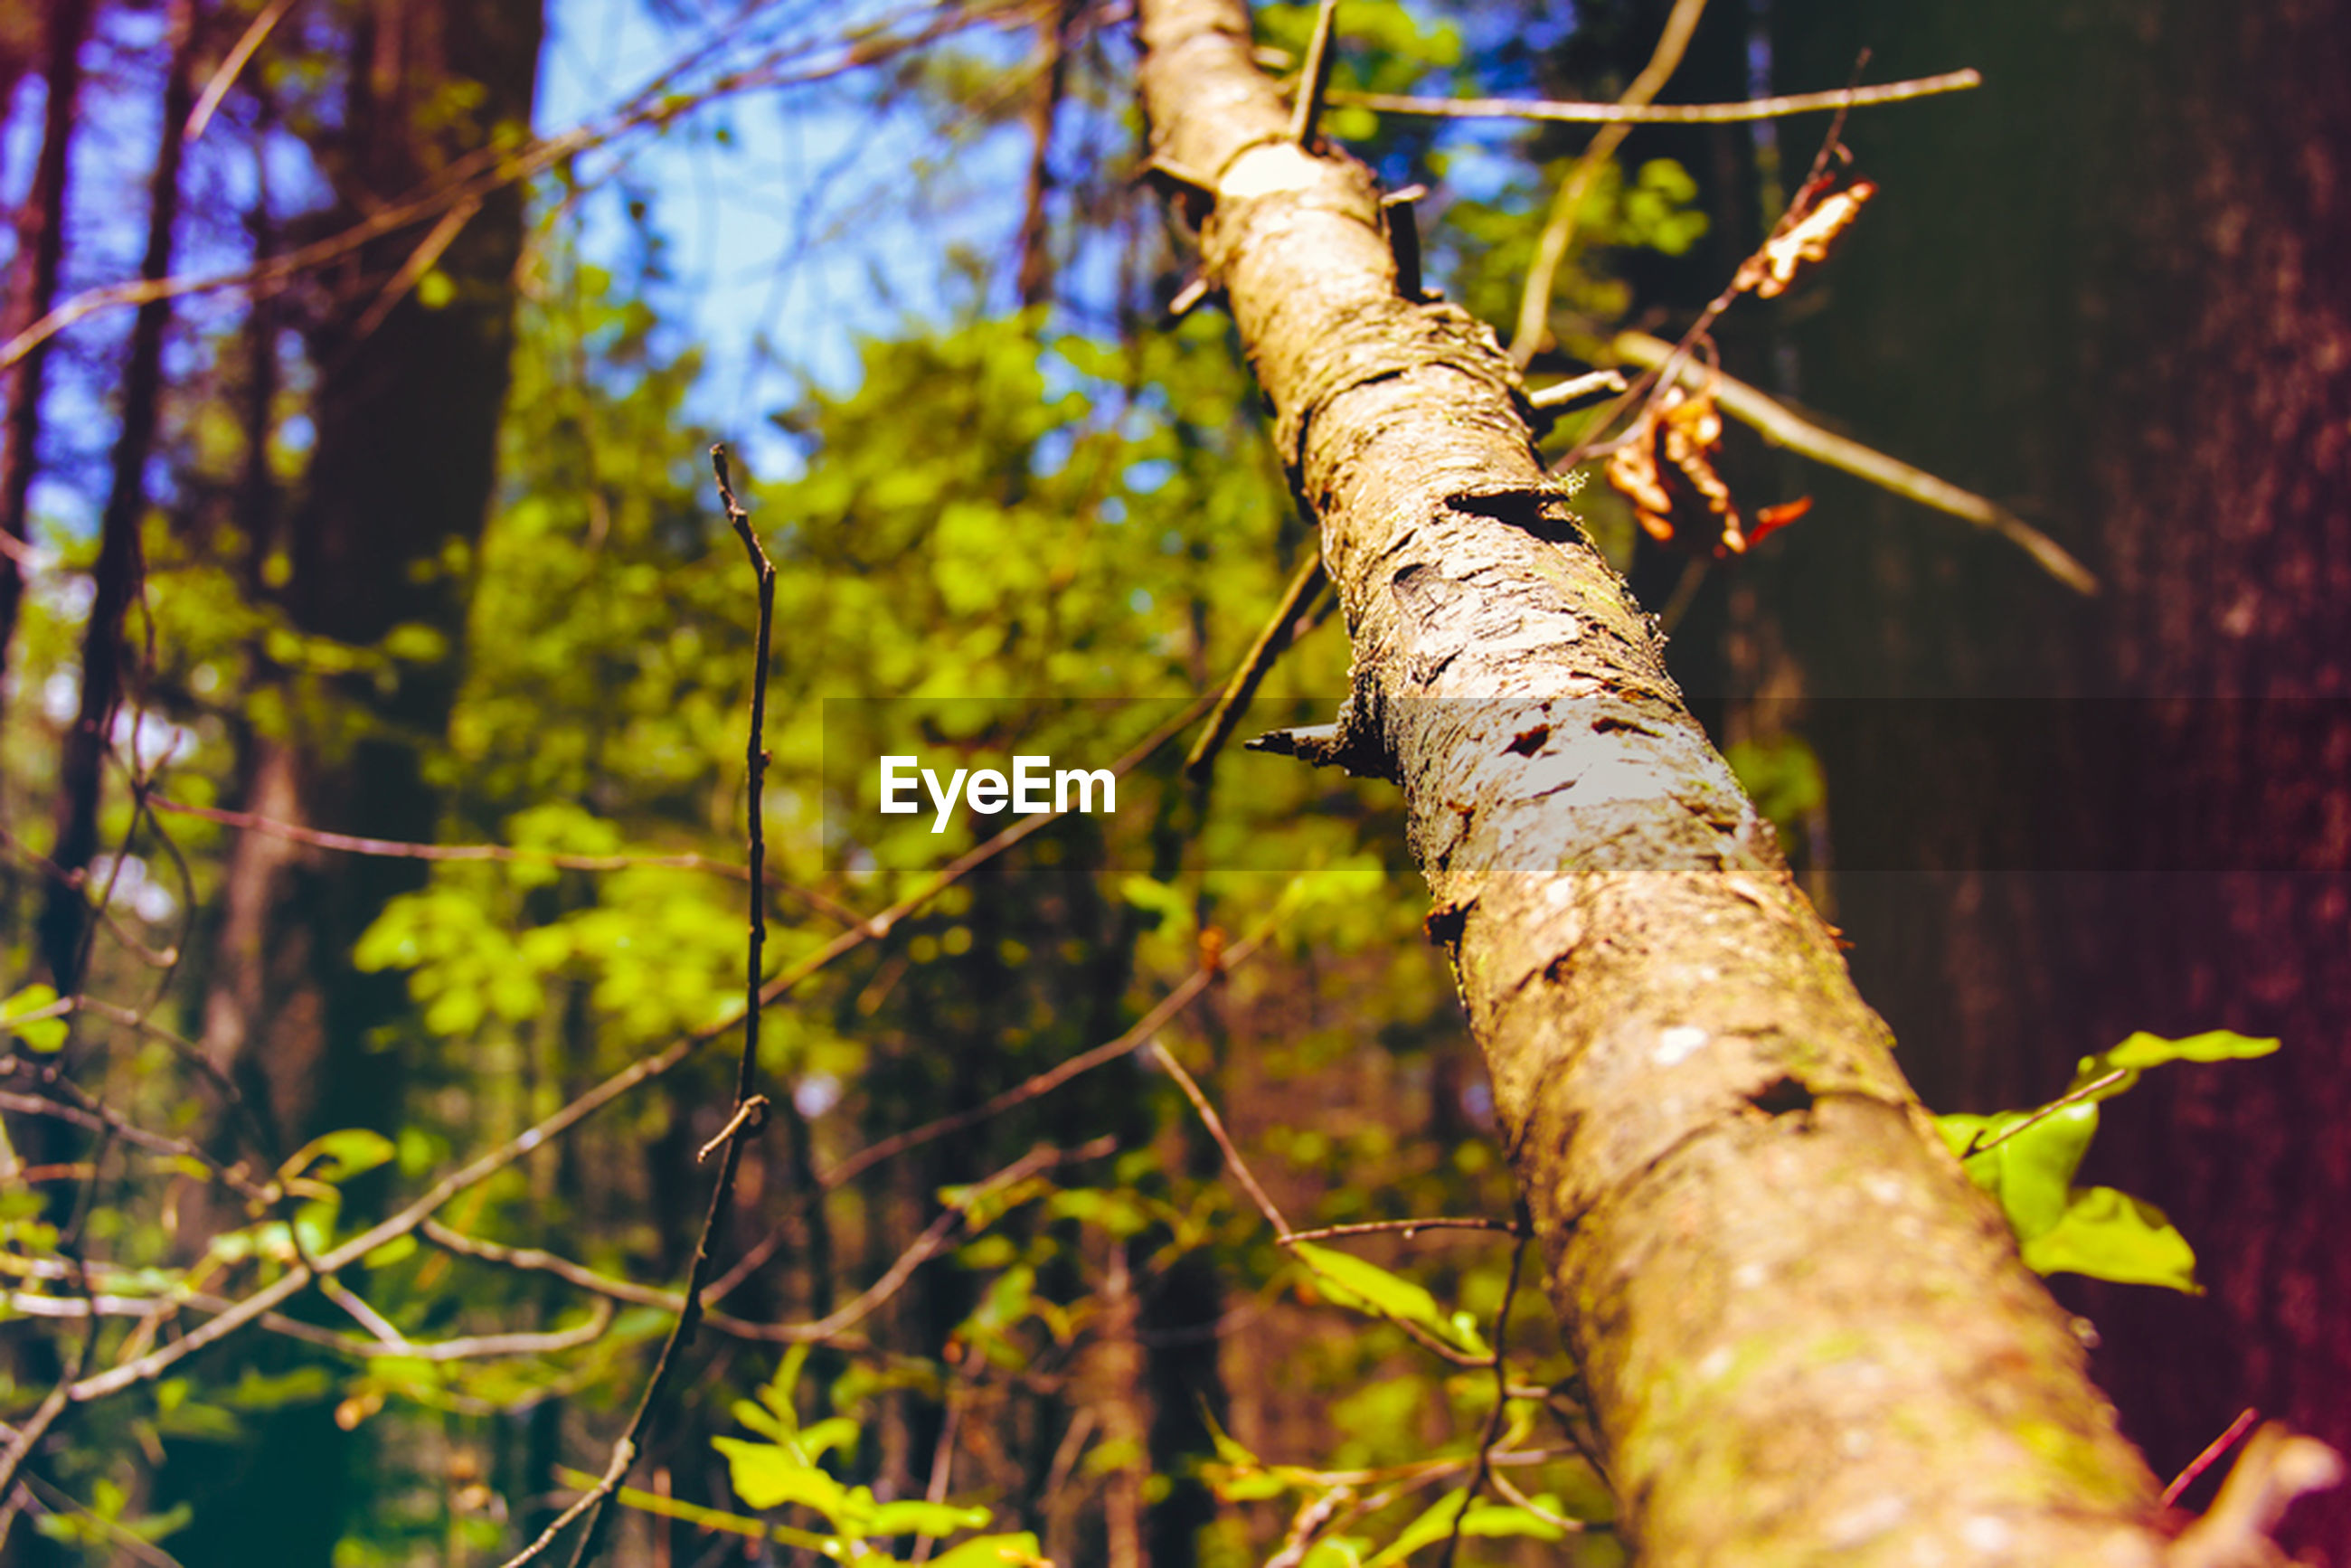 tree, focus on foreground, branch, growth, tree trunk, close-up, nature, leaf, forest, selective focus, tranquility, plant, day, outdoors, twig, no people, sunlight, green color, beauty in nature, stem